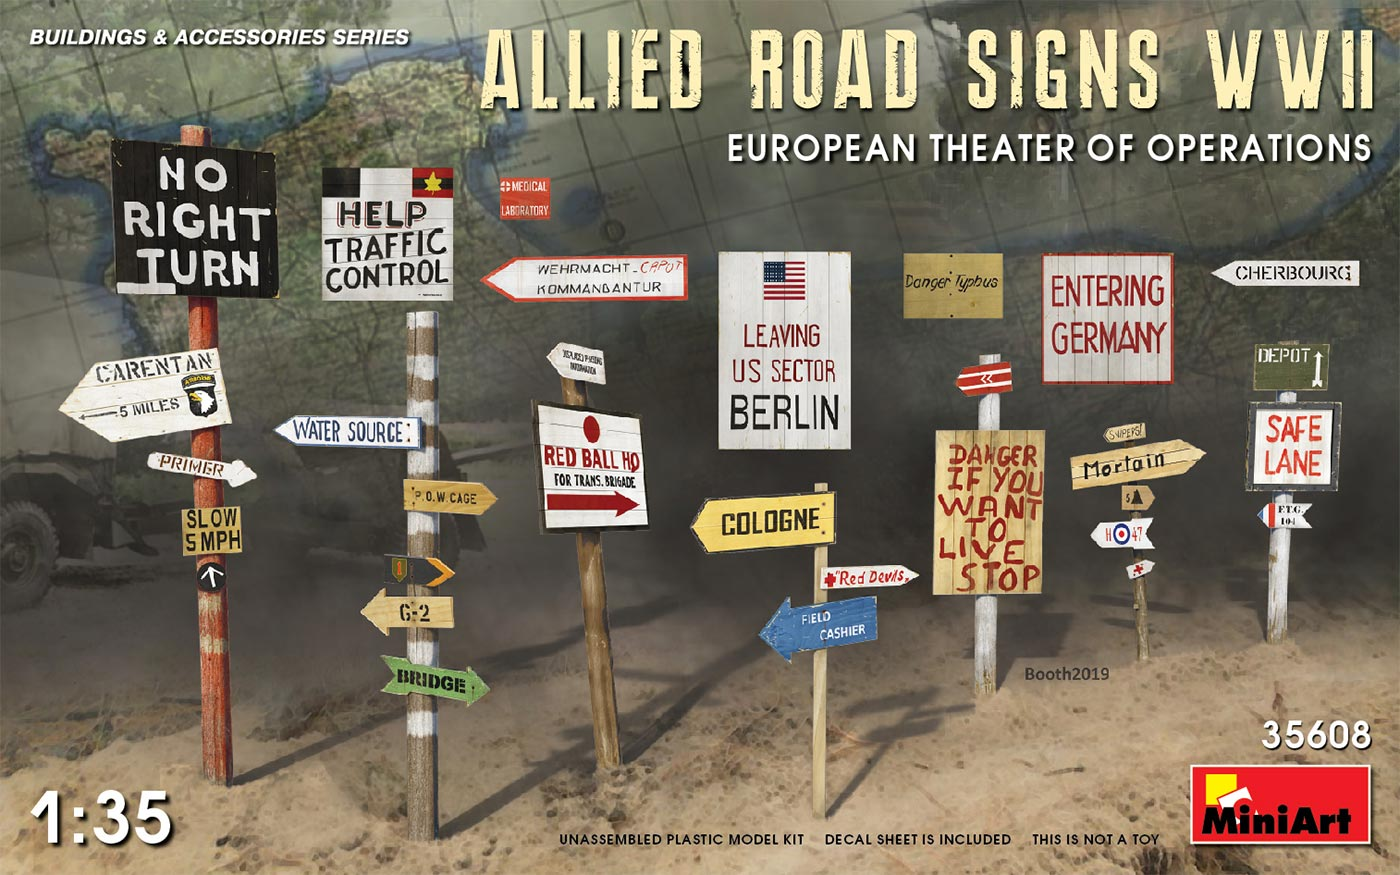 MiniArt Allied Road Signs WWII. European Theatre of Operations